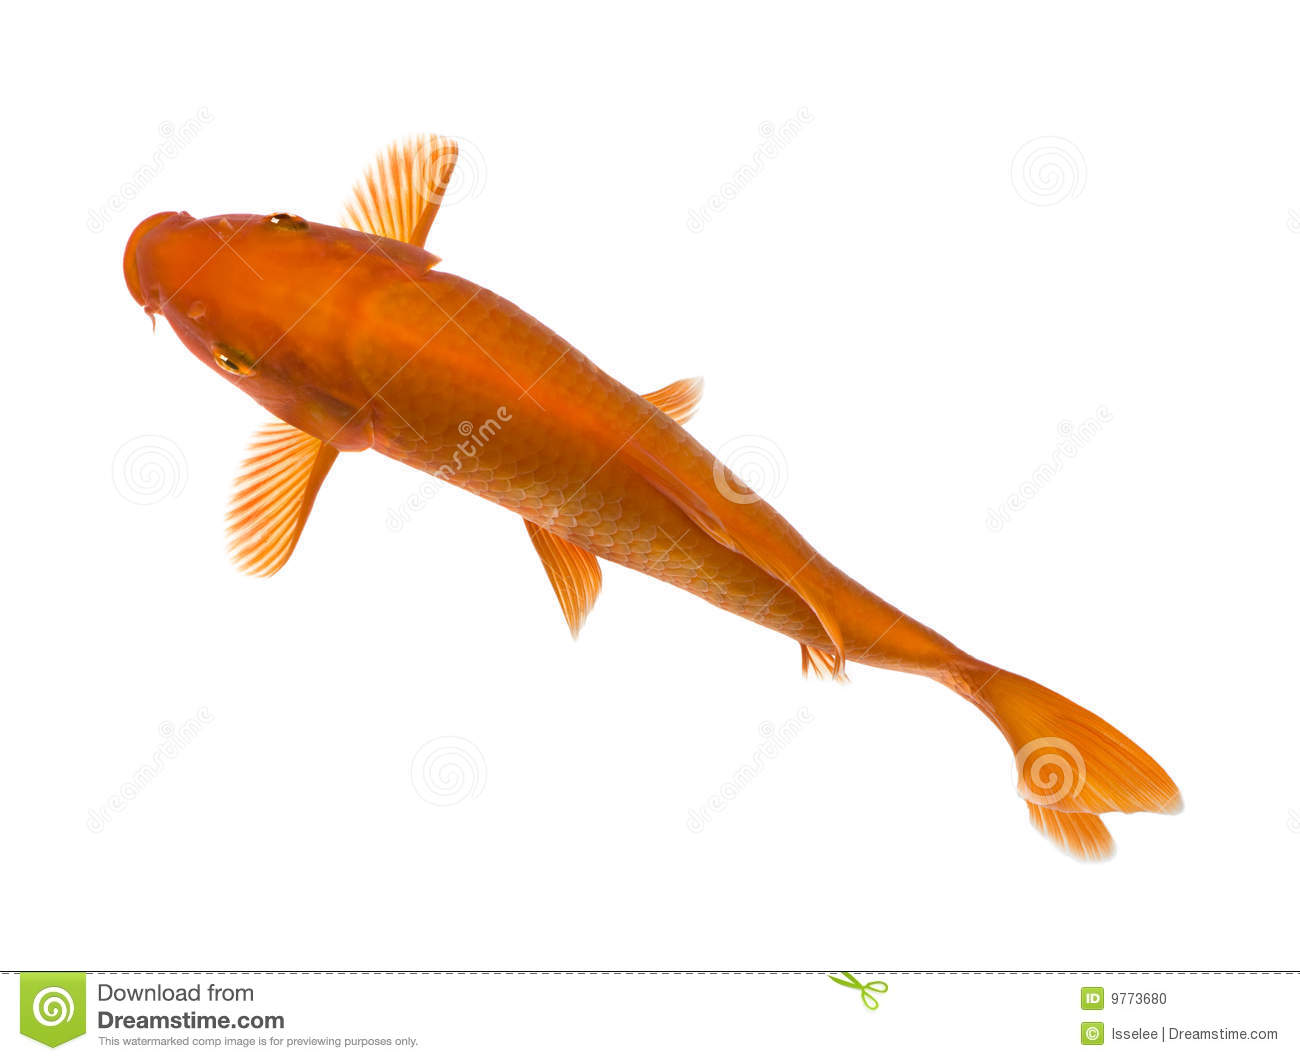 Orange koi cyprinus carpio stock photo image 9773680 for Orange koi carp